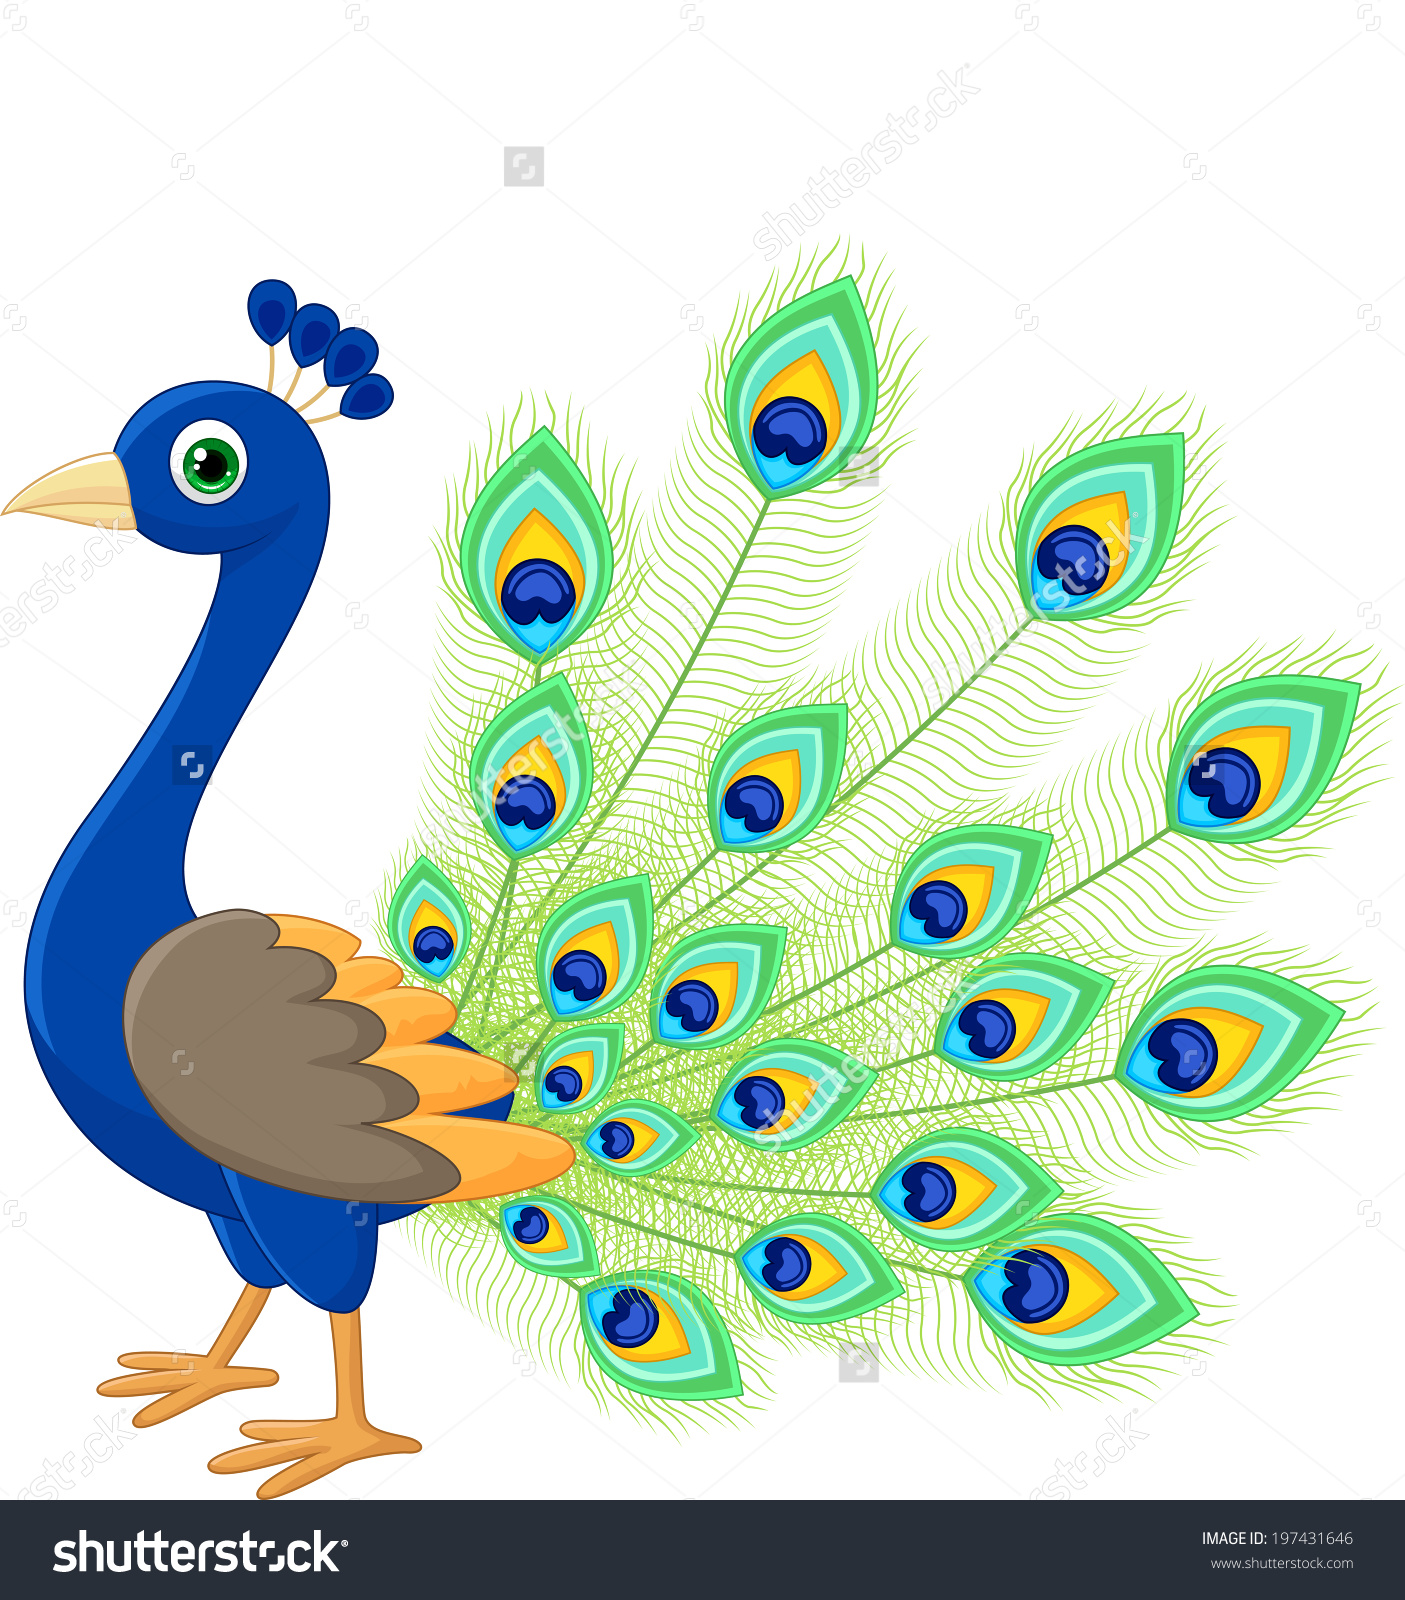 peacock feather clipart at getdrawings com free for personal use rh getdrawings com peacock clipart pictures peacock feather images clip art